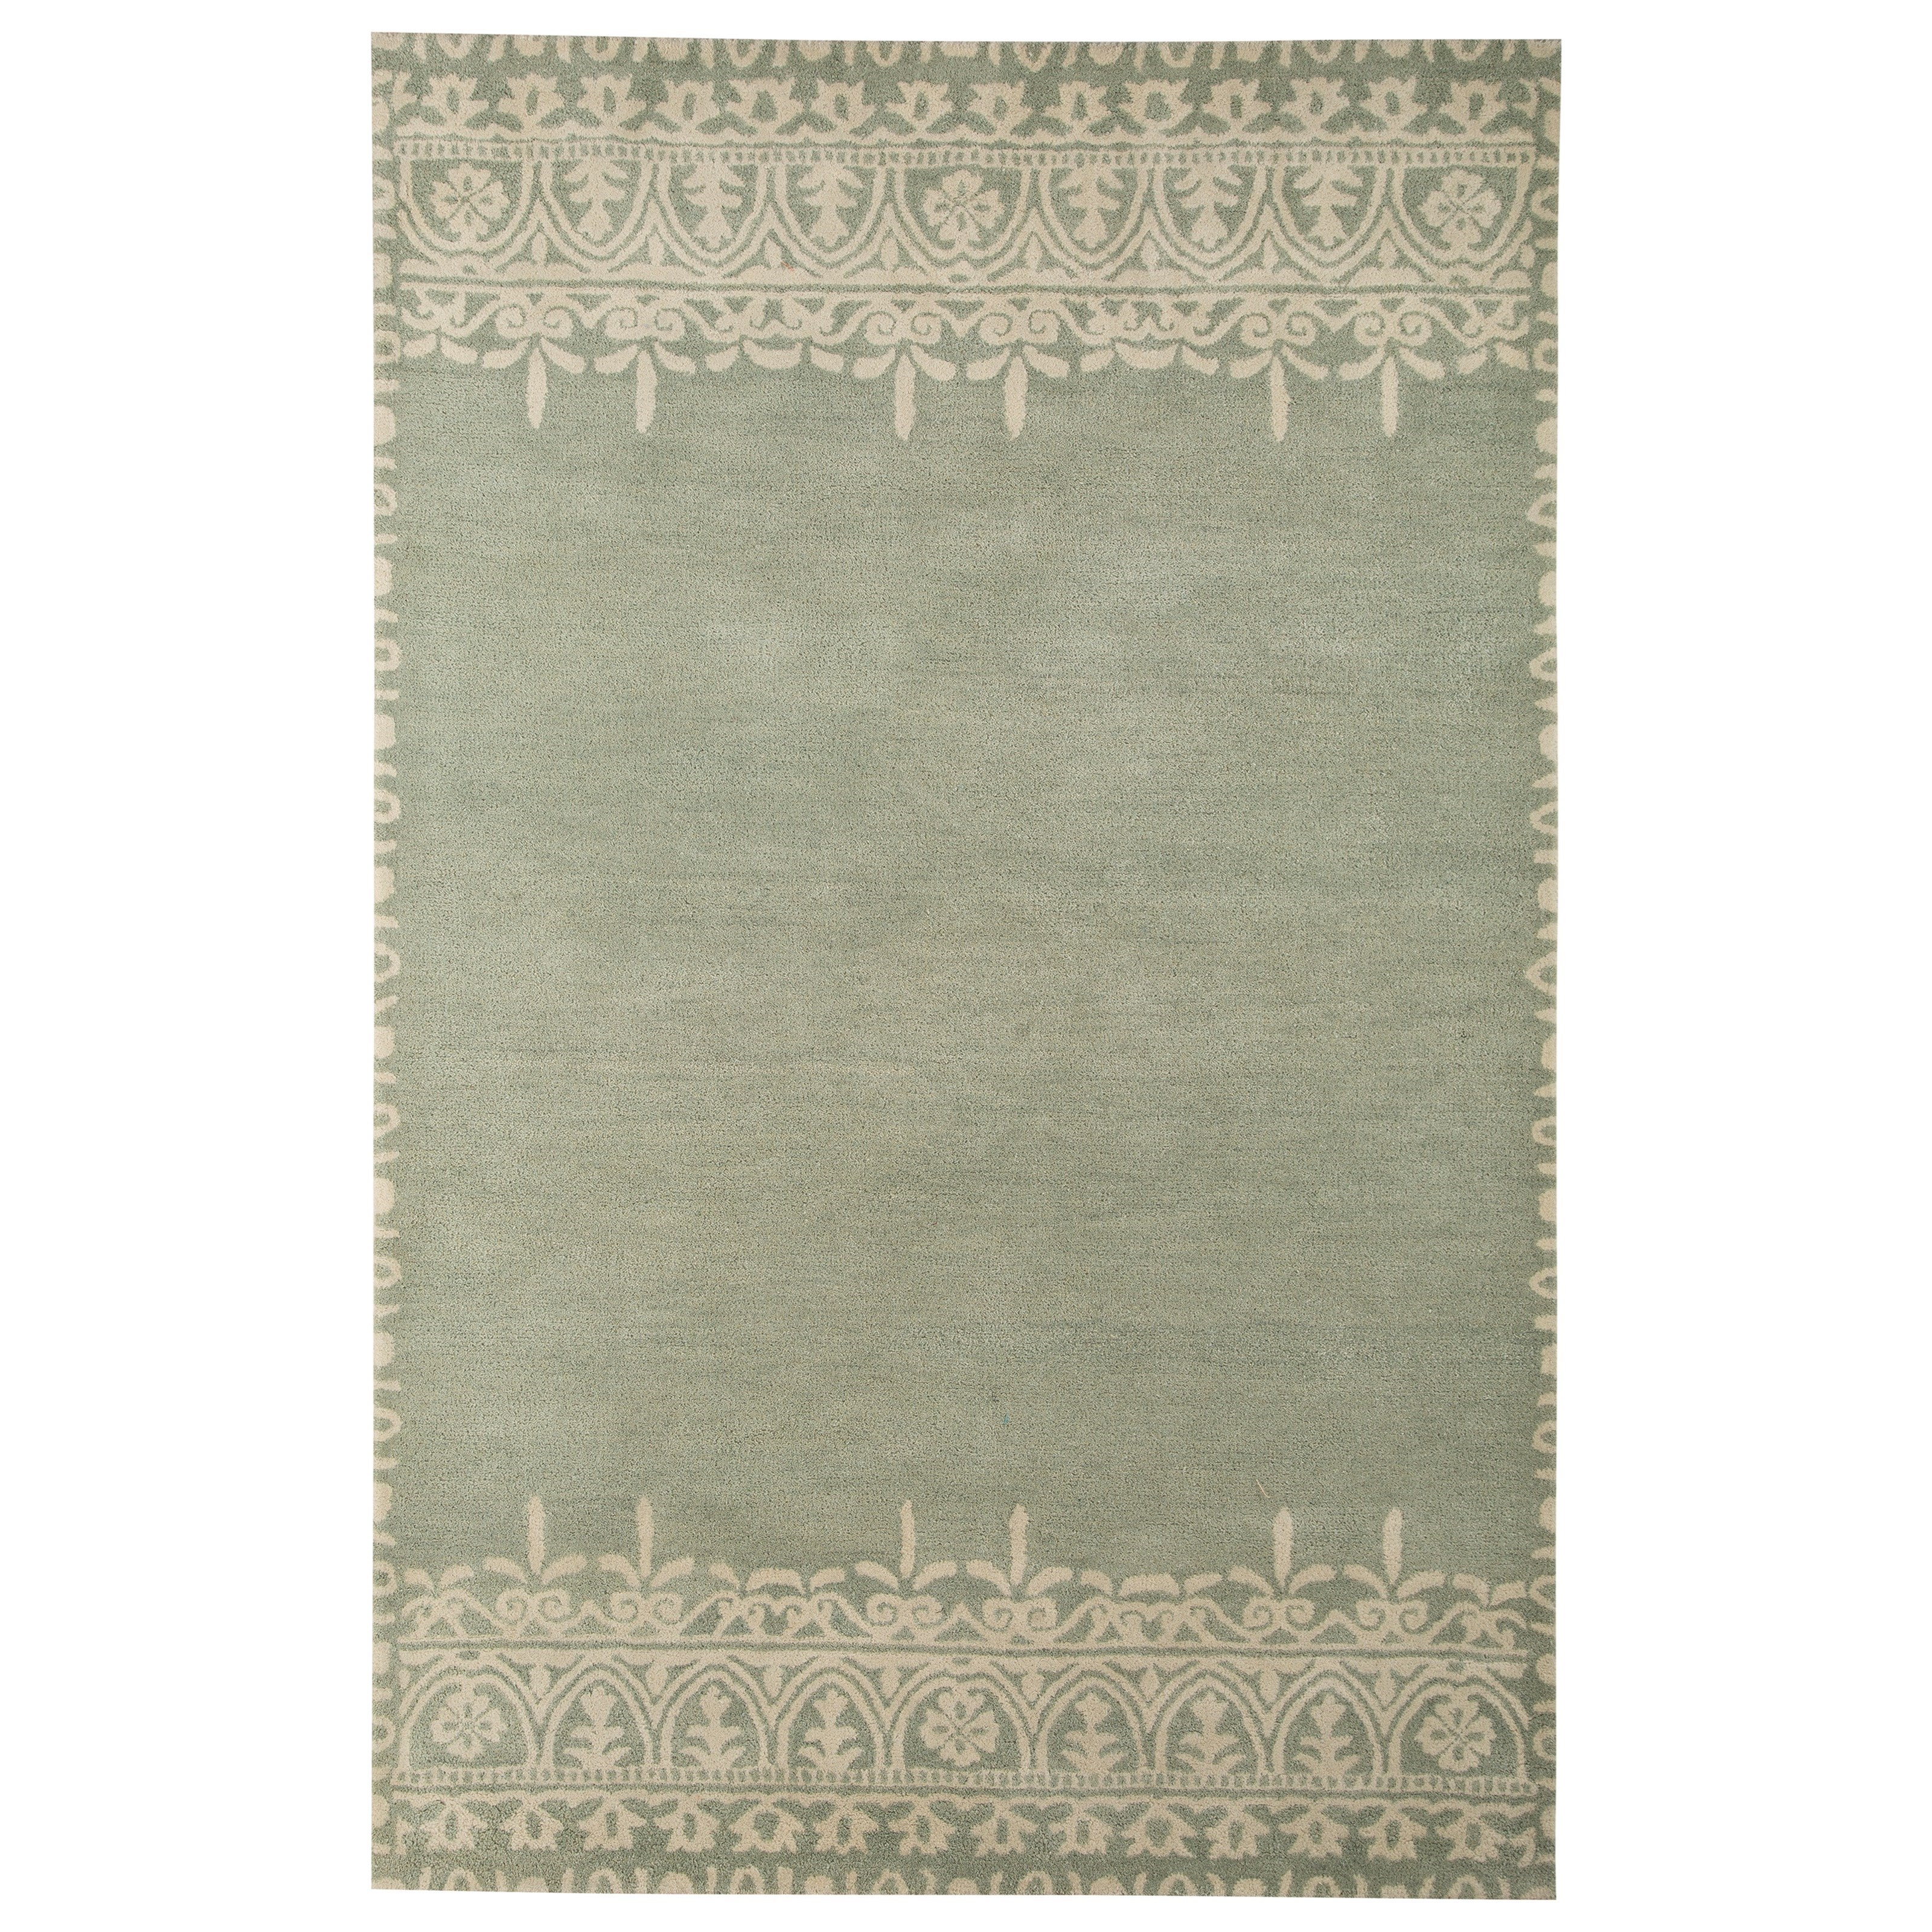 Signature Design by Ashley Transitional Area Rugs Brimly Green Medium Rug - Item Number: R400362